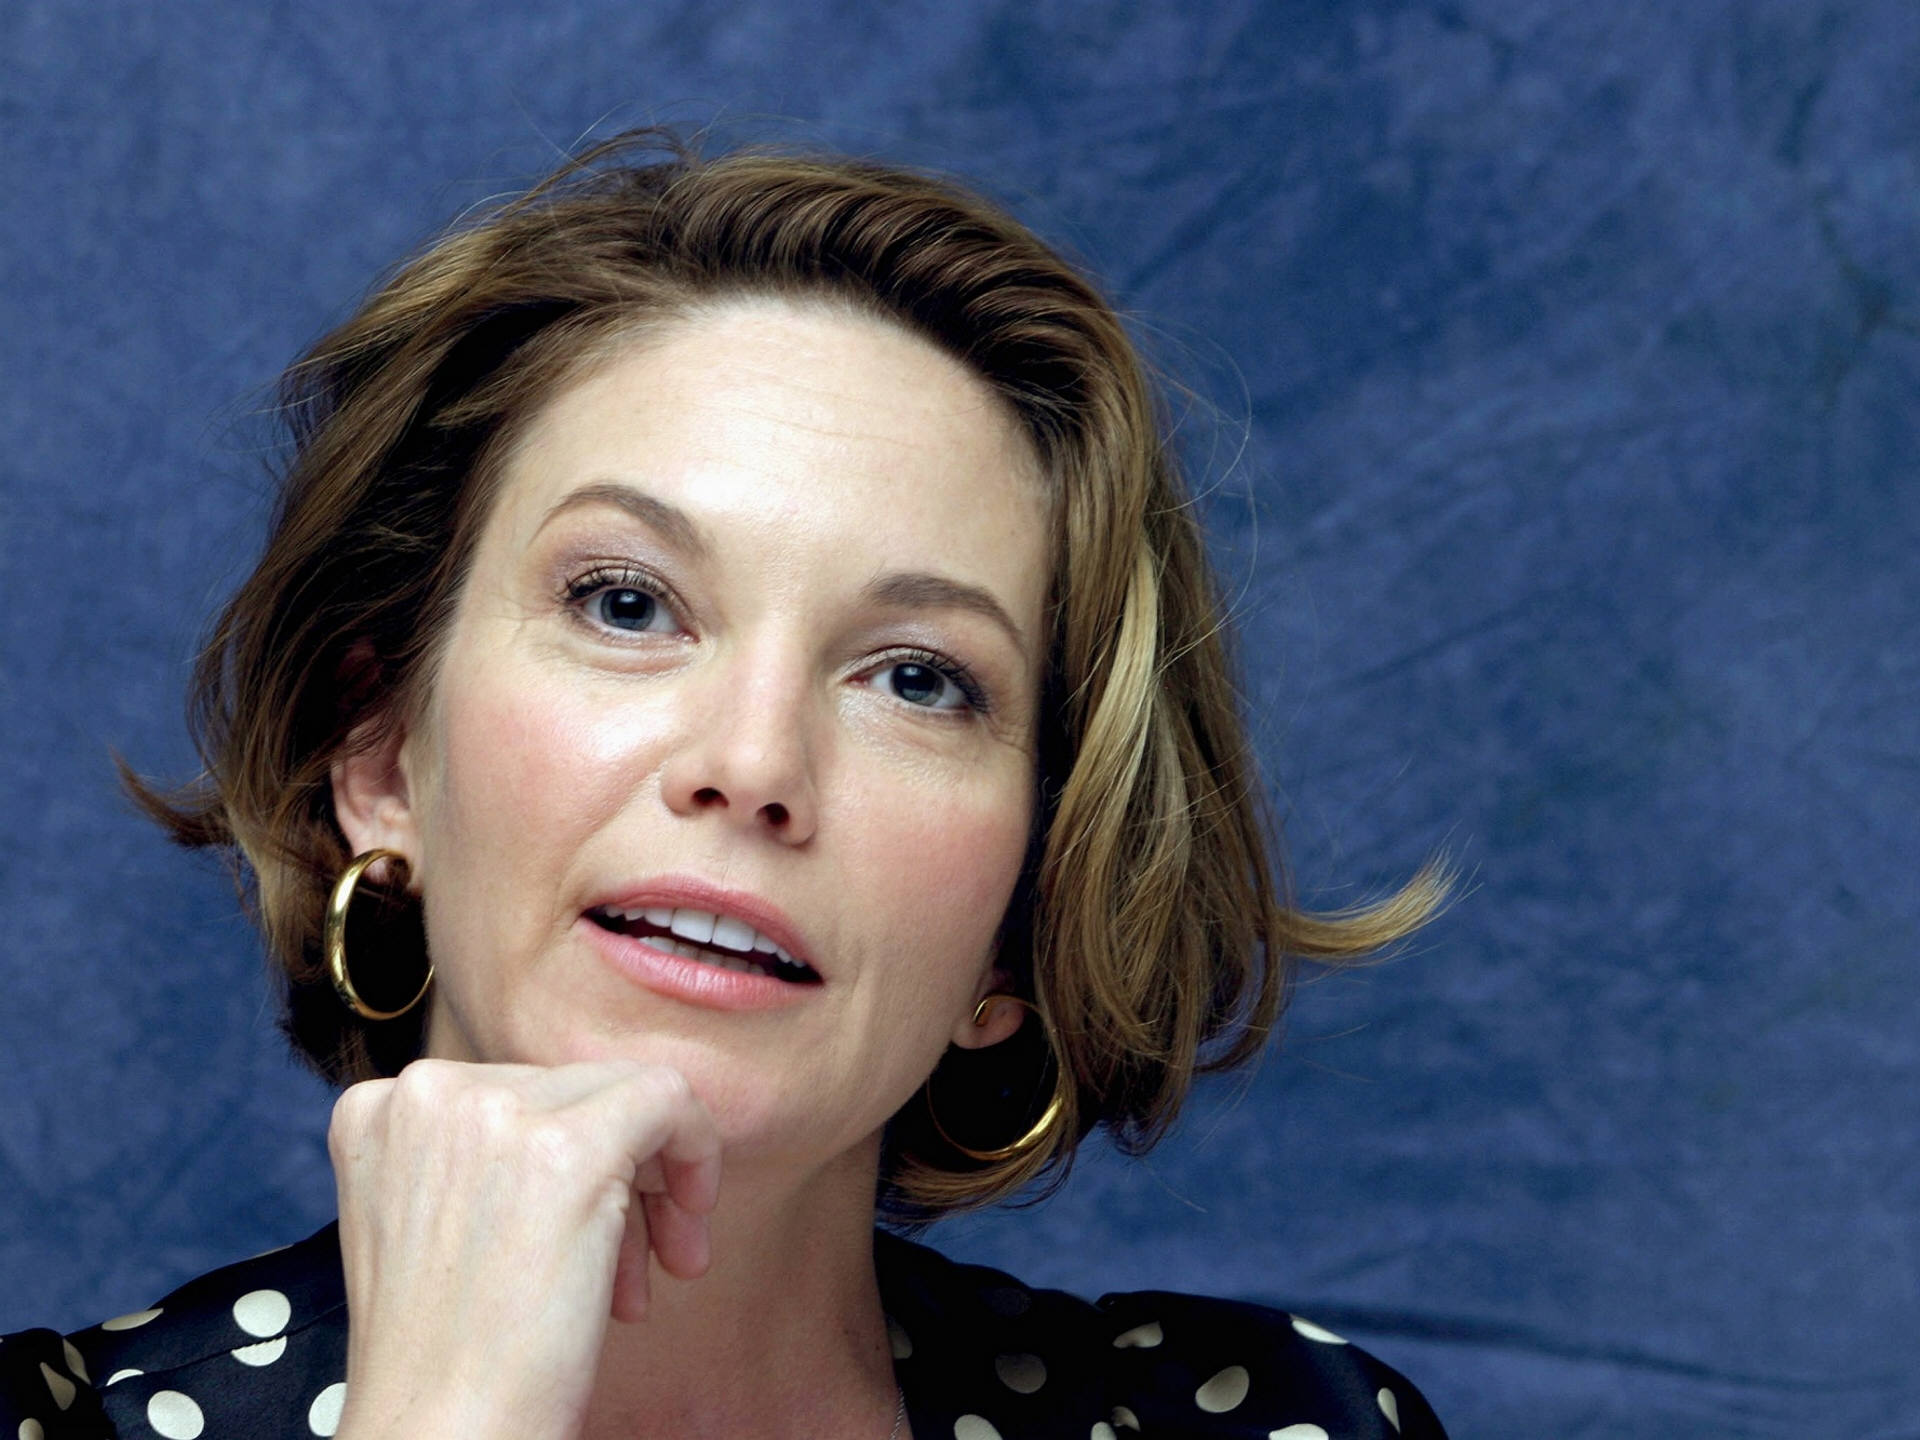 diane lane computer wallpaper 58169